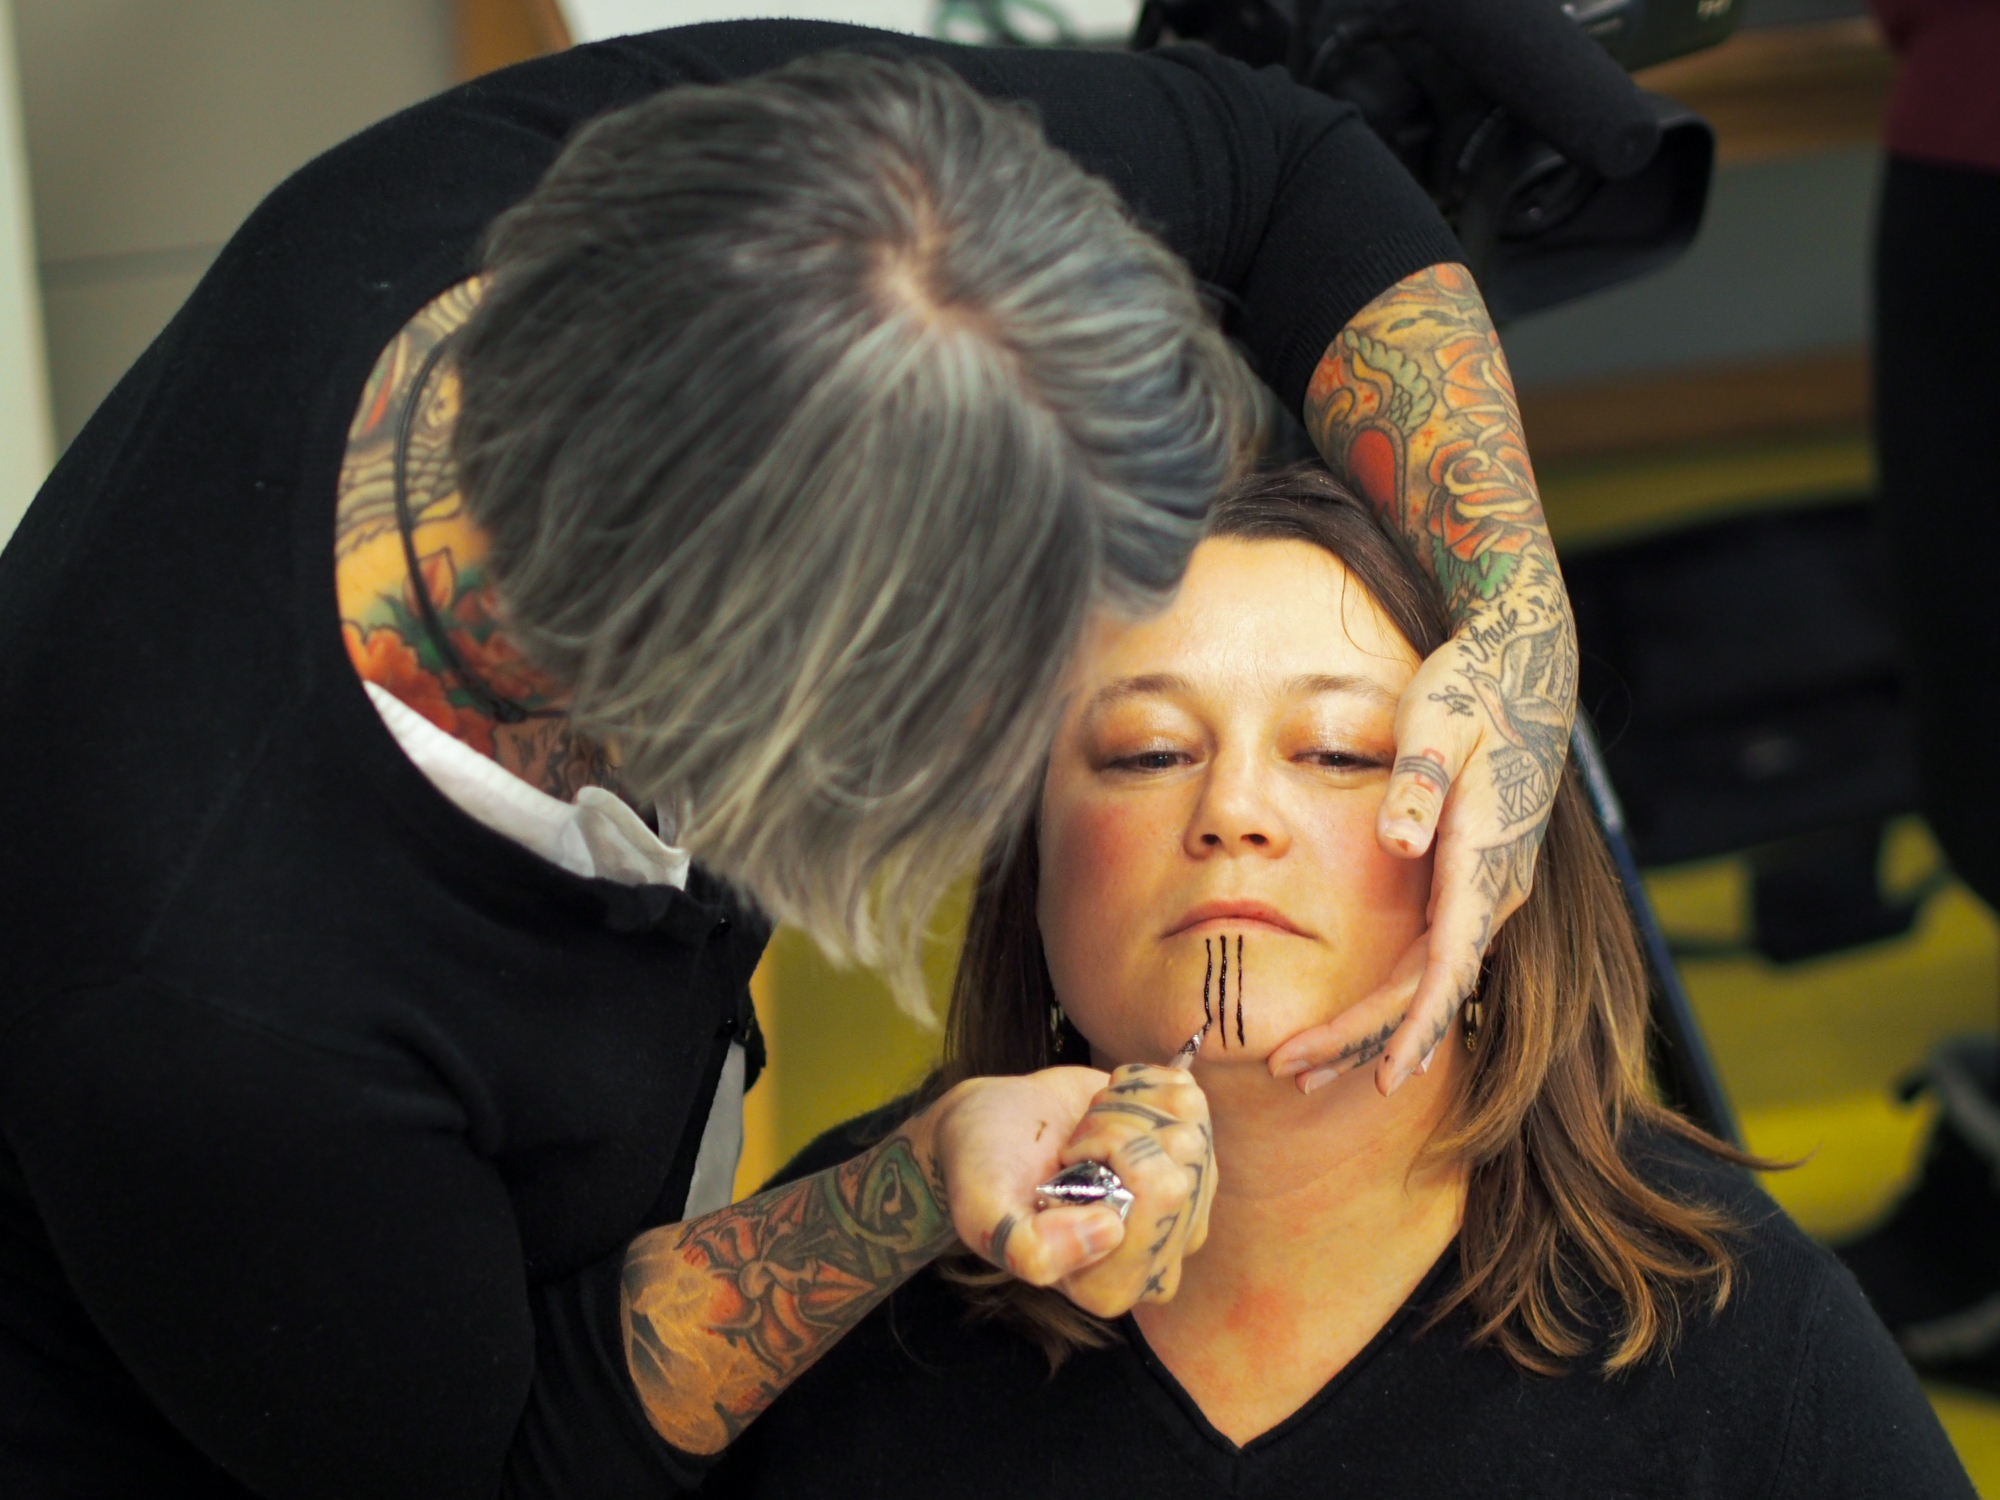 A return to native roots traced in ink ncpr news for Tattoo parlors in anchorage